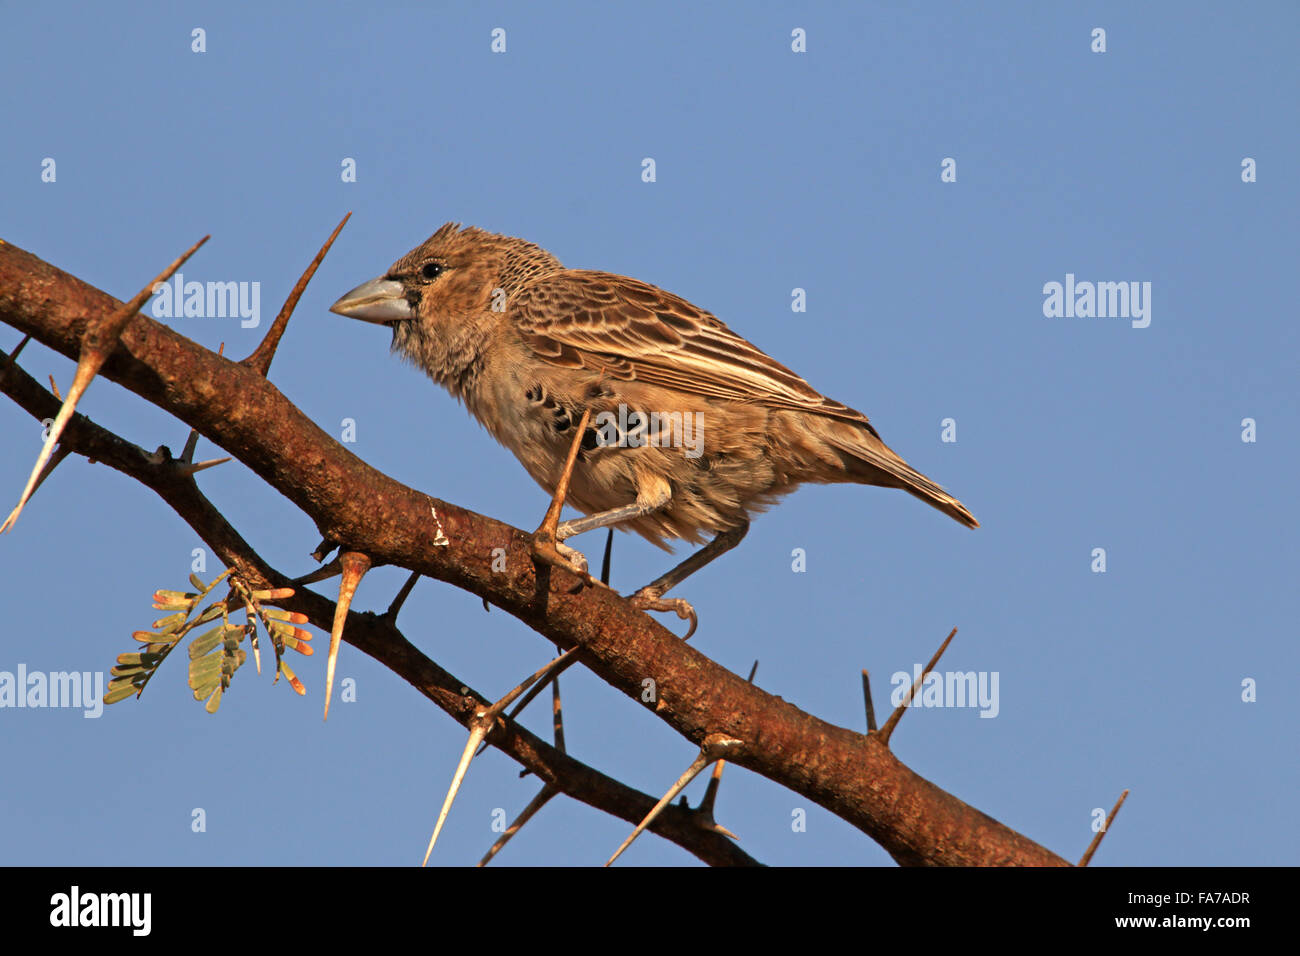 Sociable Weaver bird Philetairus socius Kgalagadi Transfrontier National Park Northern Cape Afrique du Sud Banque D'Images